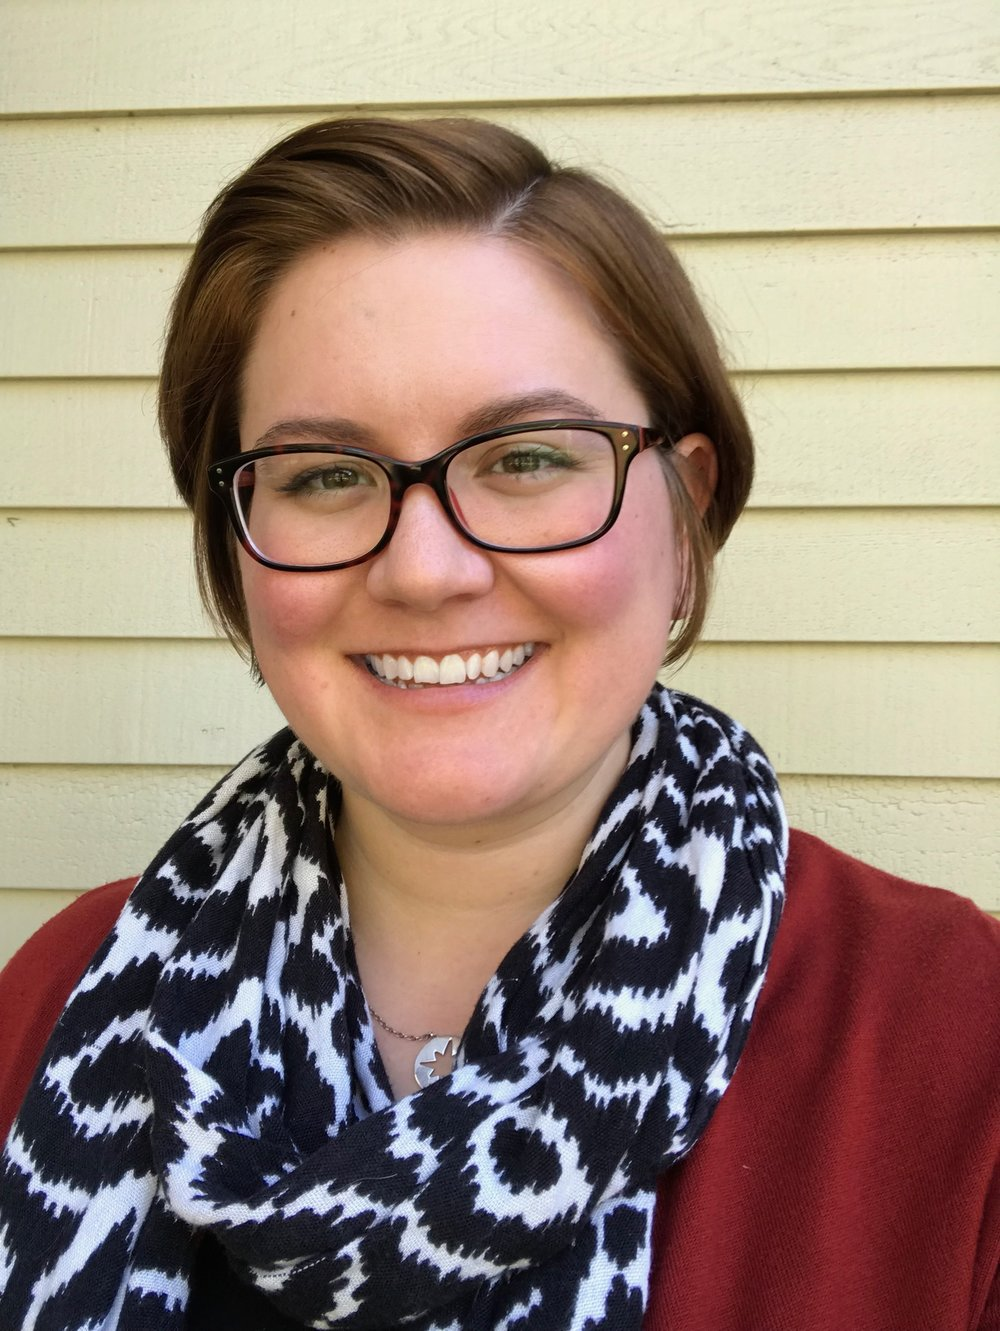 Erin Antenen, LICSW - Therapist specializing in women's cancer care.